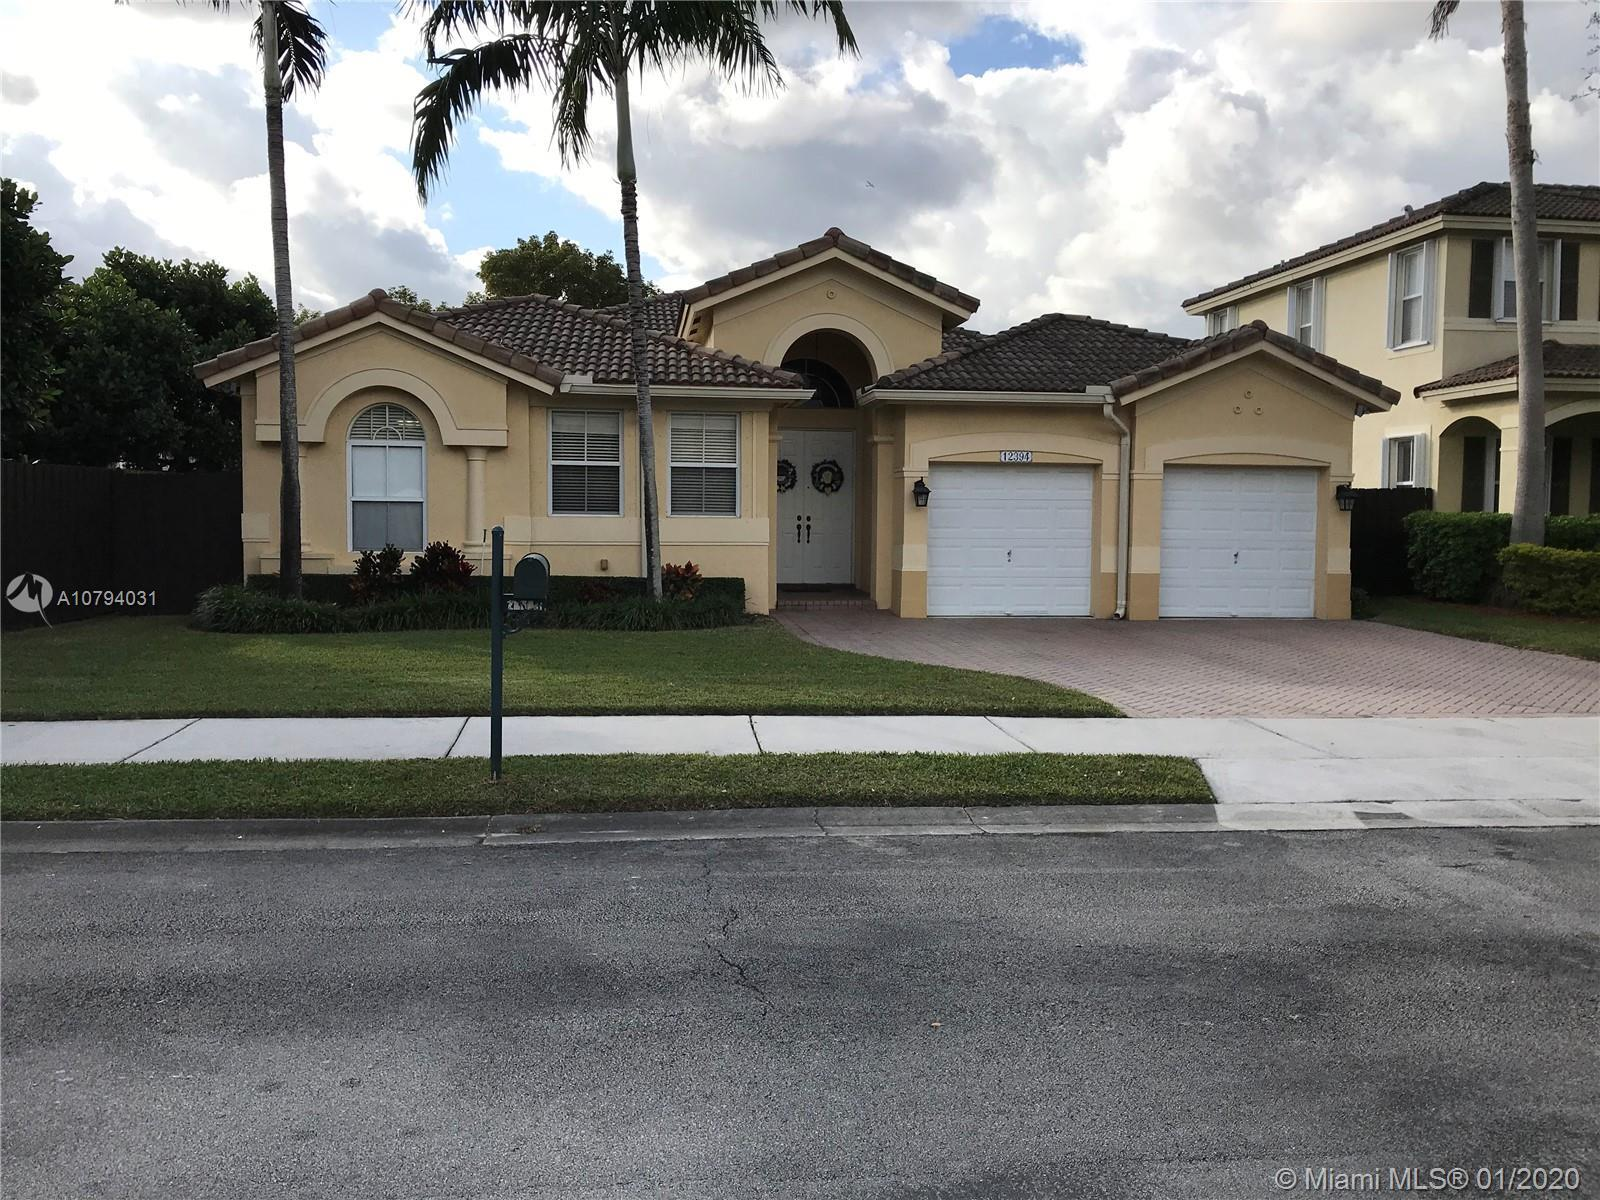 Kendall Breeze Single Family Home with 4 Bedrooms, 2 Bathrooms and a 2 Car Garage.Kitchen with Grani